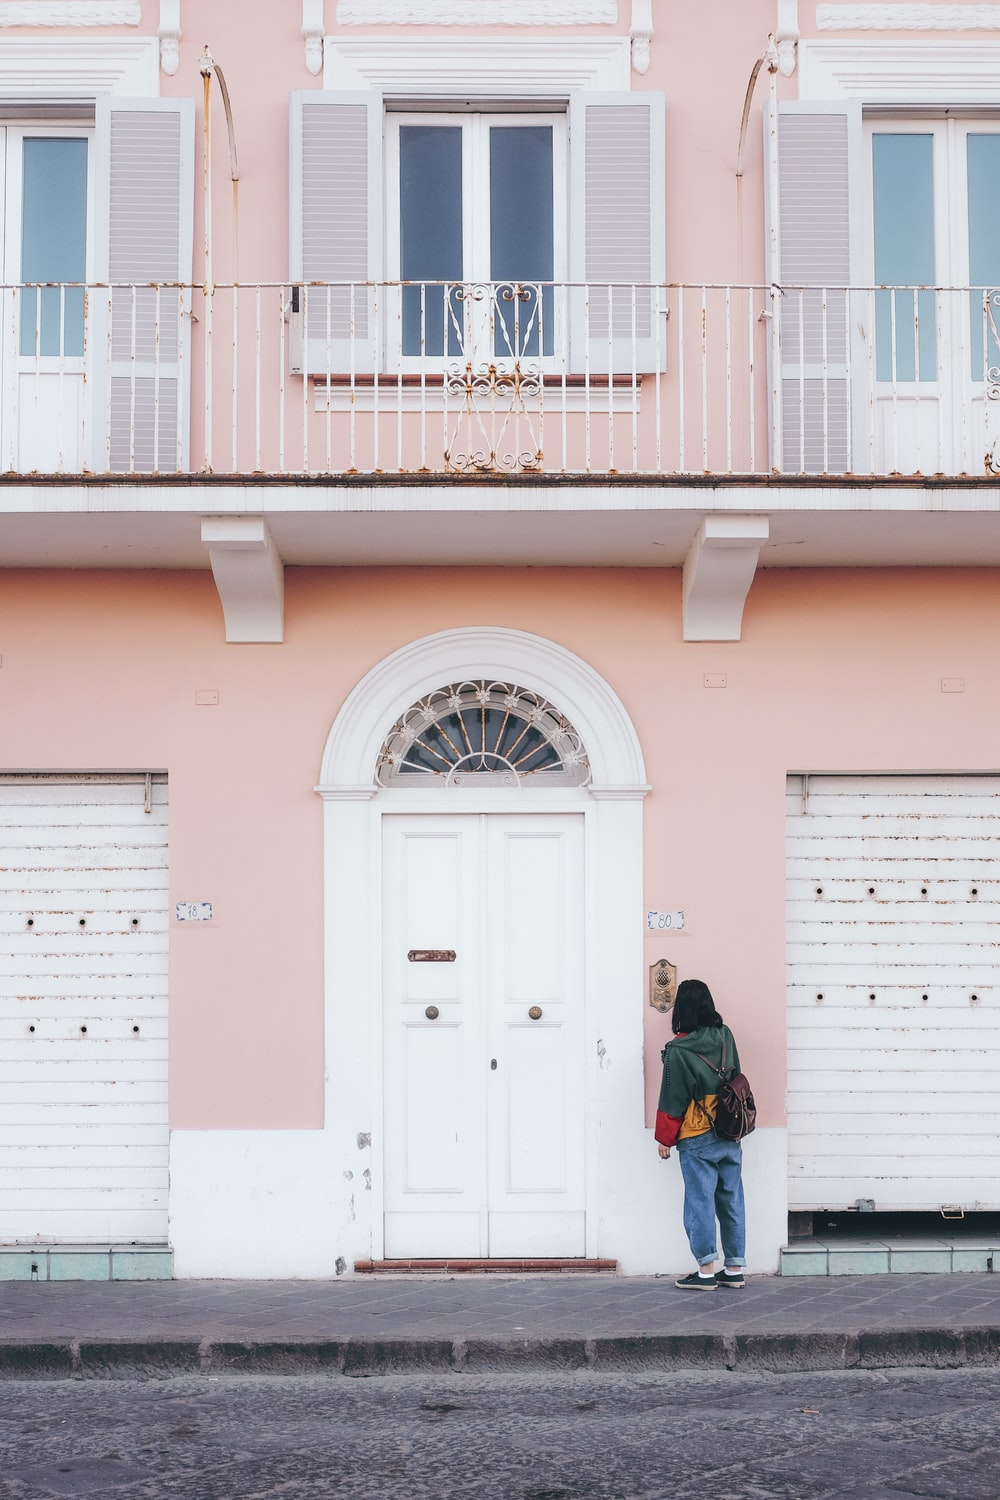 person standing in front of pink and white painted building